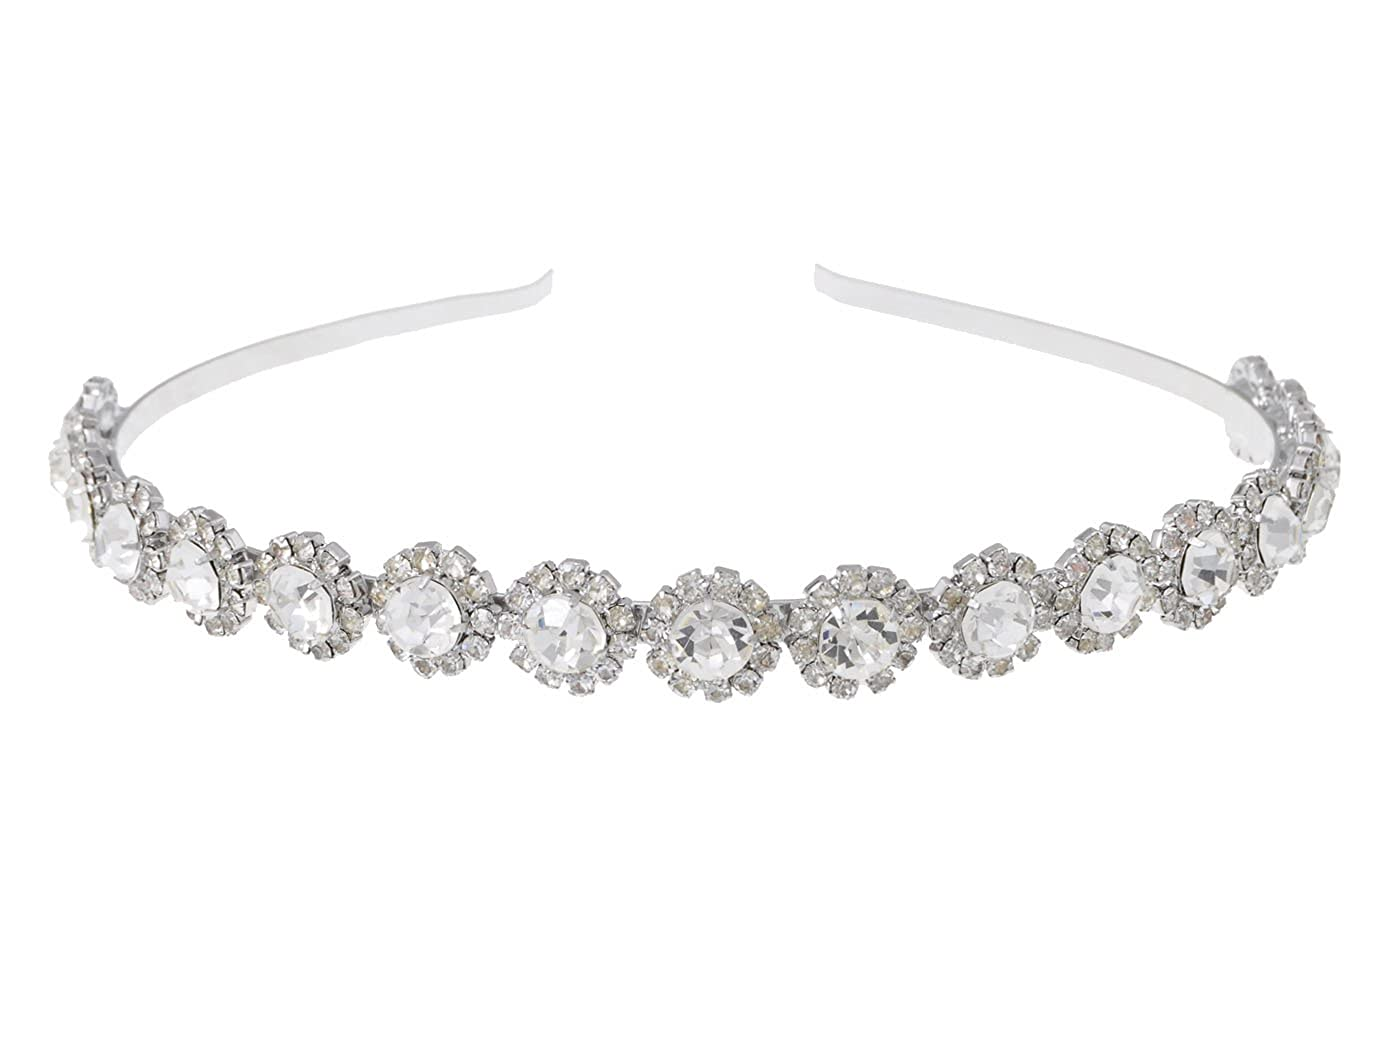 Alilang Silvery Clear Crystal Colored Rhinestone Studded Floral Metal Head Band Piece